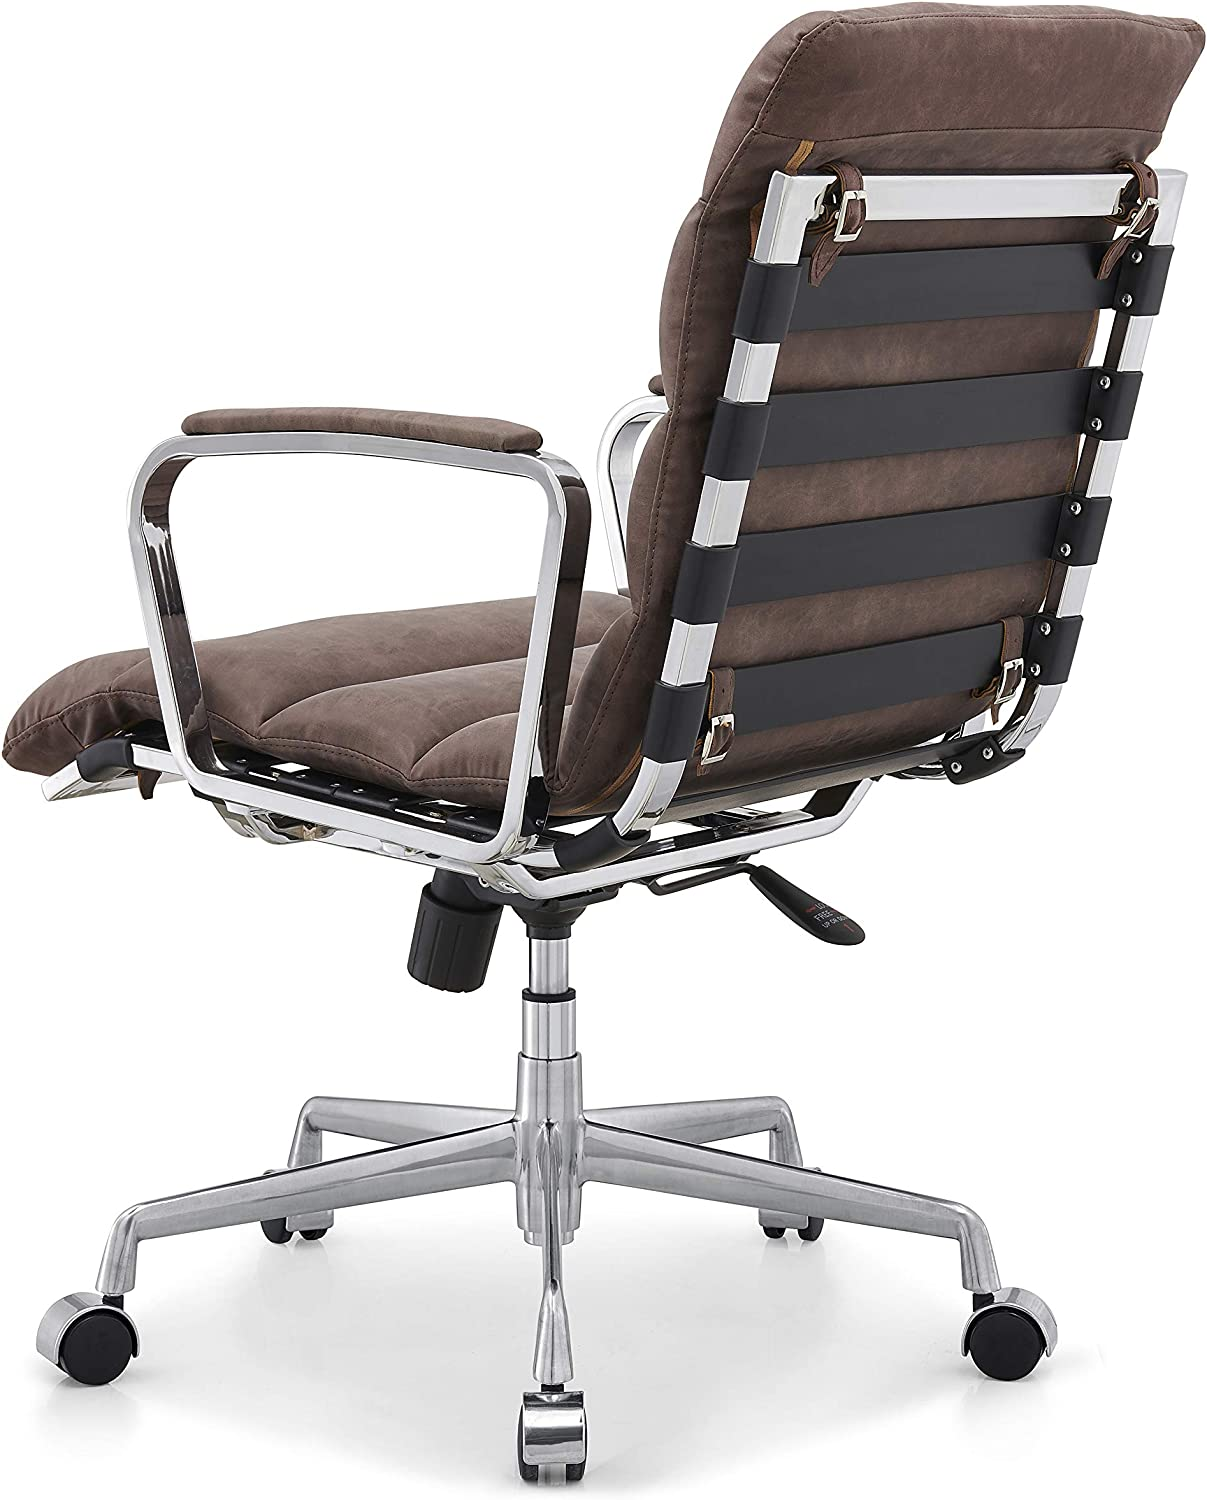 Cherry Tree Furniture Kingston Vintage Effect Faux Leather Office Chair with Chrome Frame & Aluminium Base (Brown PU) Brown Pu